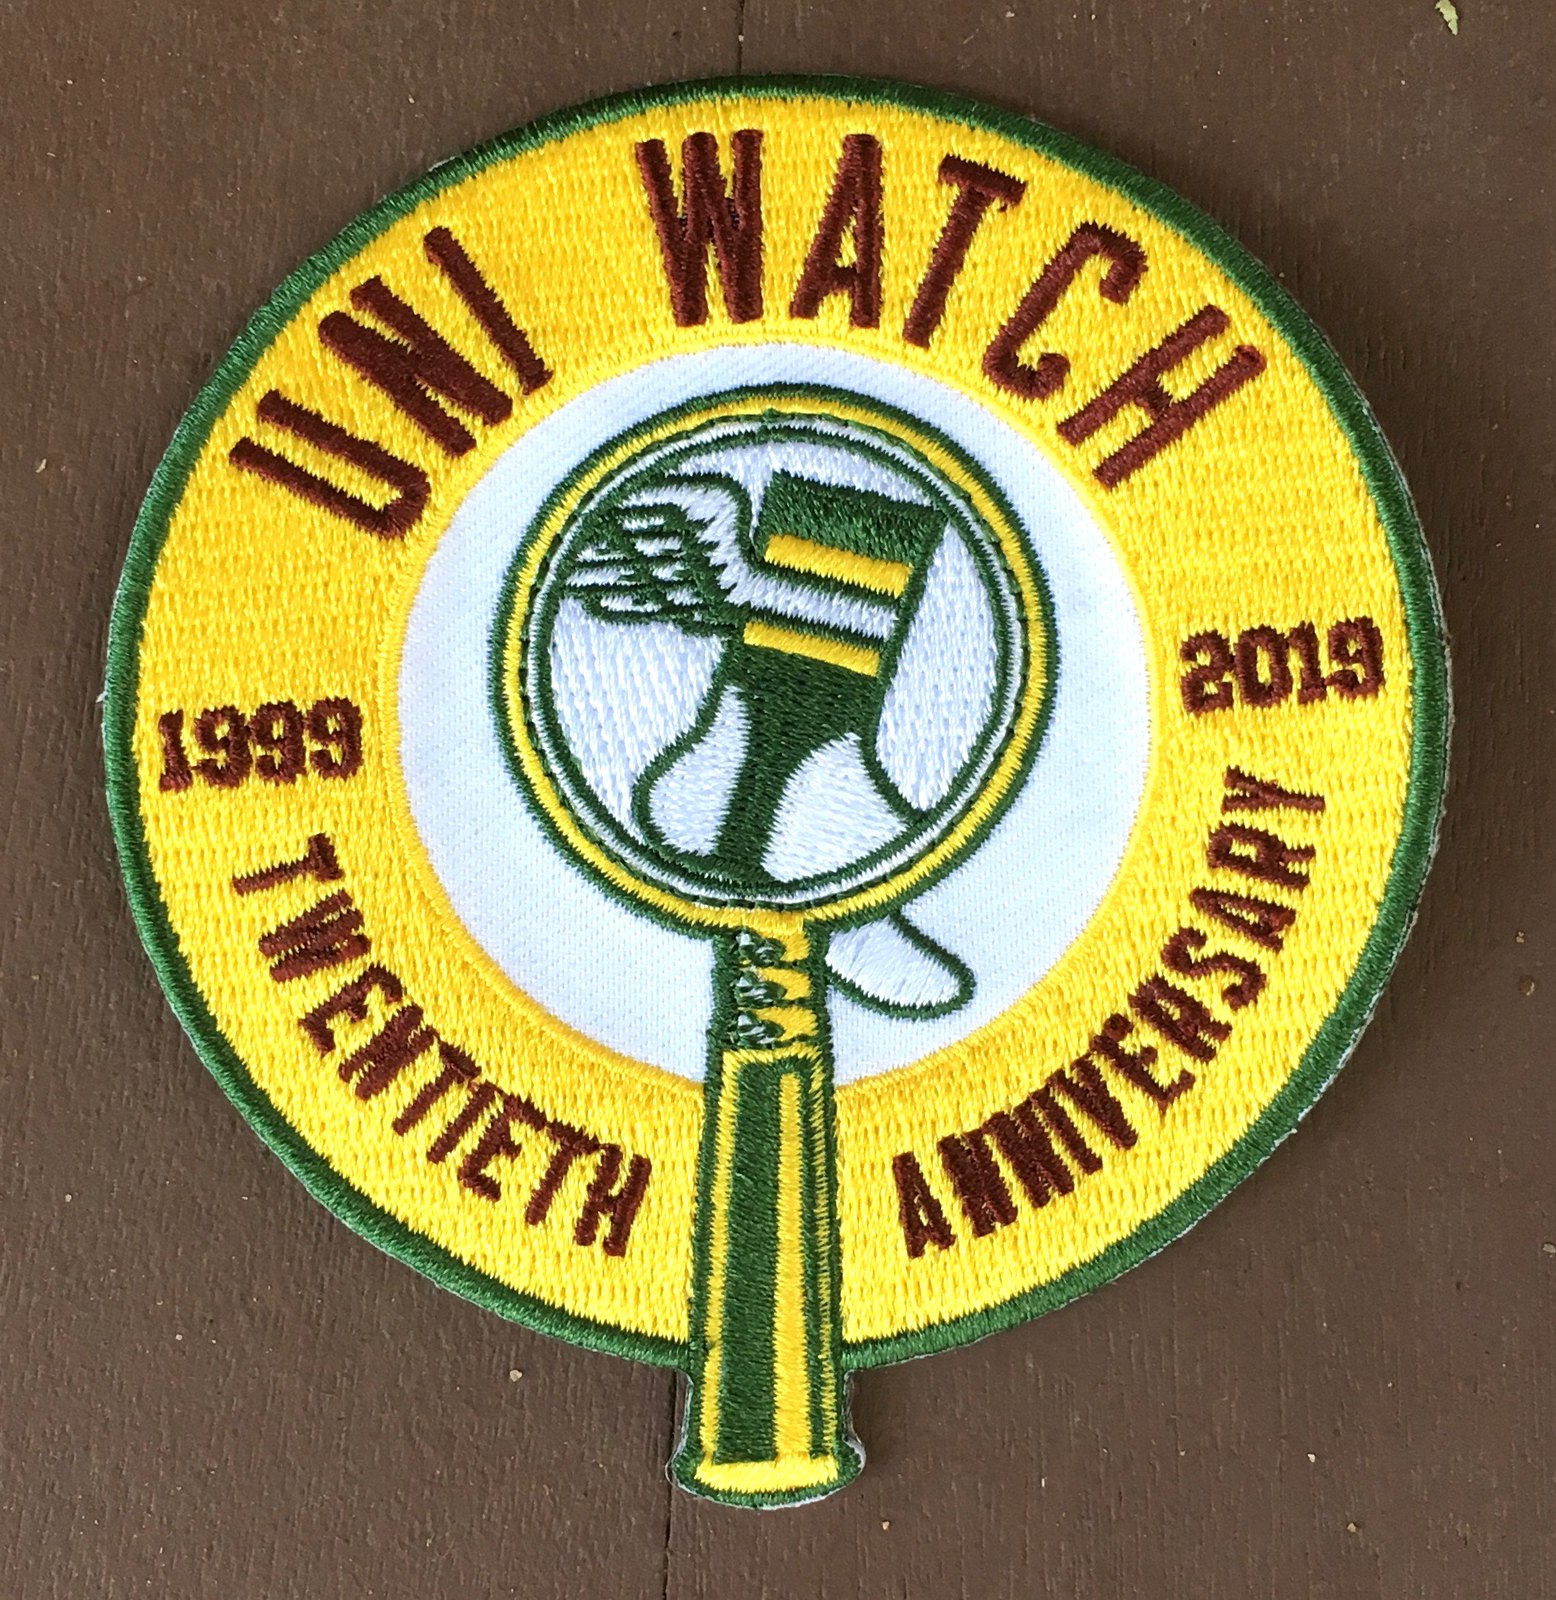 18c219bbb7c655 Uni-versary patch reminder: In case you haven't seen, the Uni Watch  20th-anniversary logo is now available as an embroidered patch.